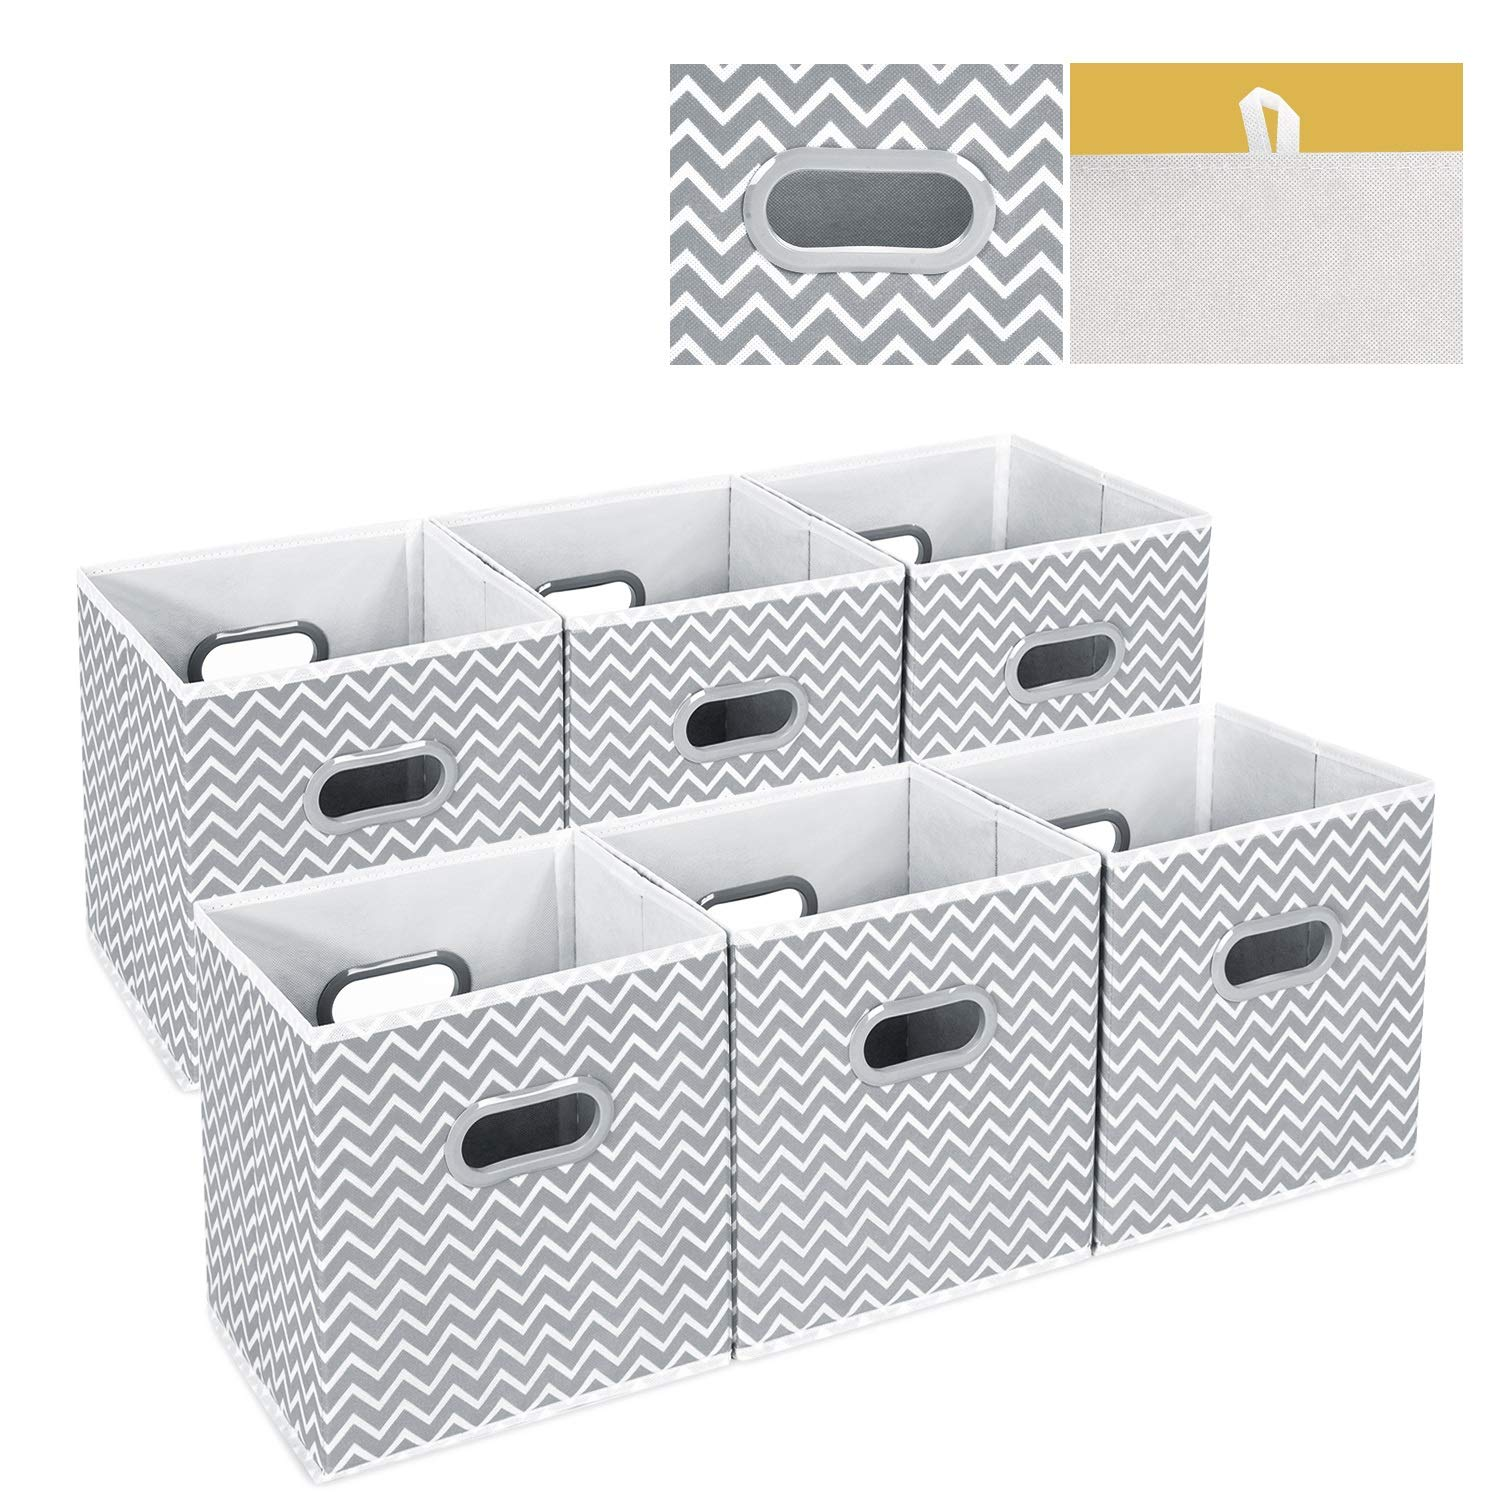 Set of 6 Foldable Organiser Cubes Basket Bin Drawers Containers with Dual Plastic Handles for Home Office Nursery Organisation MaidMAX Fabric Storage Box cm Grey 26.6 x 26.6 x 27.9